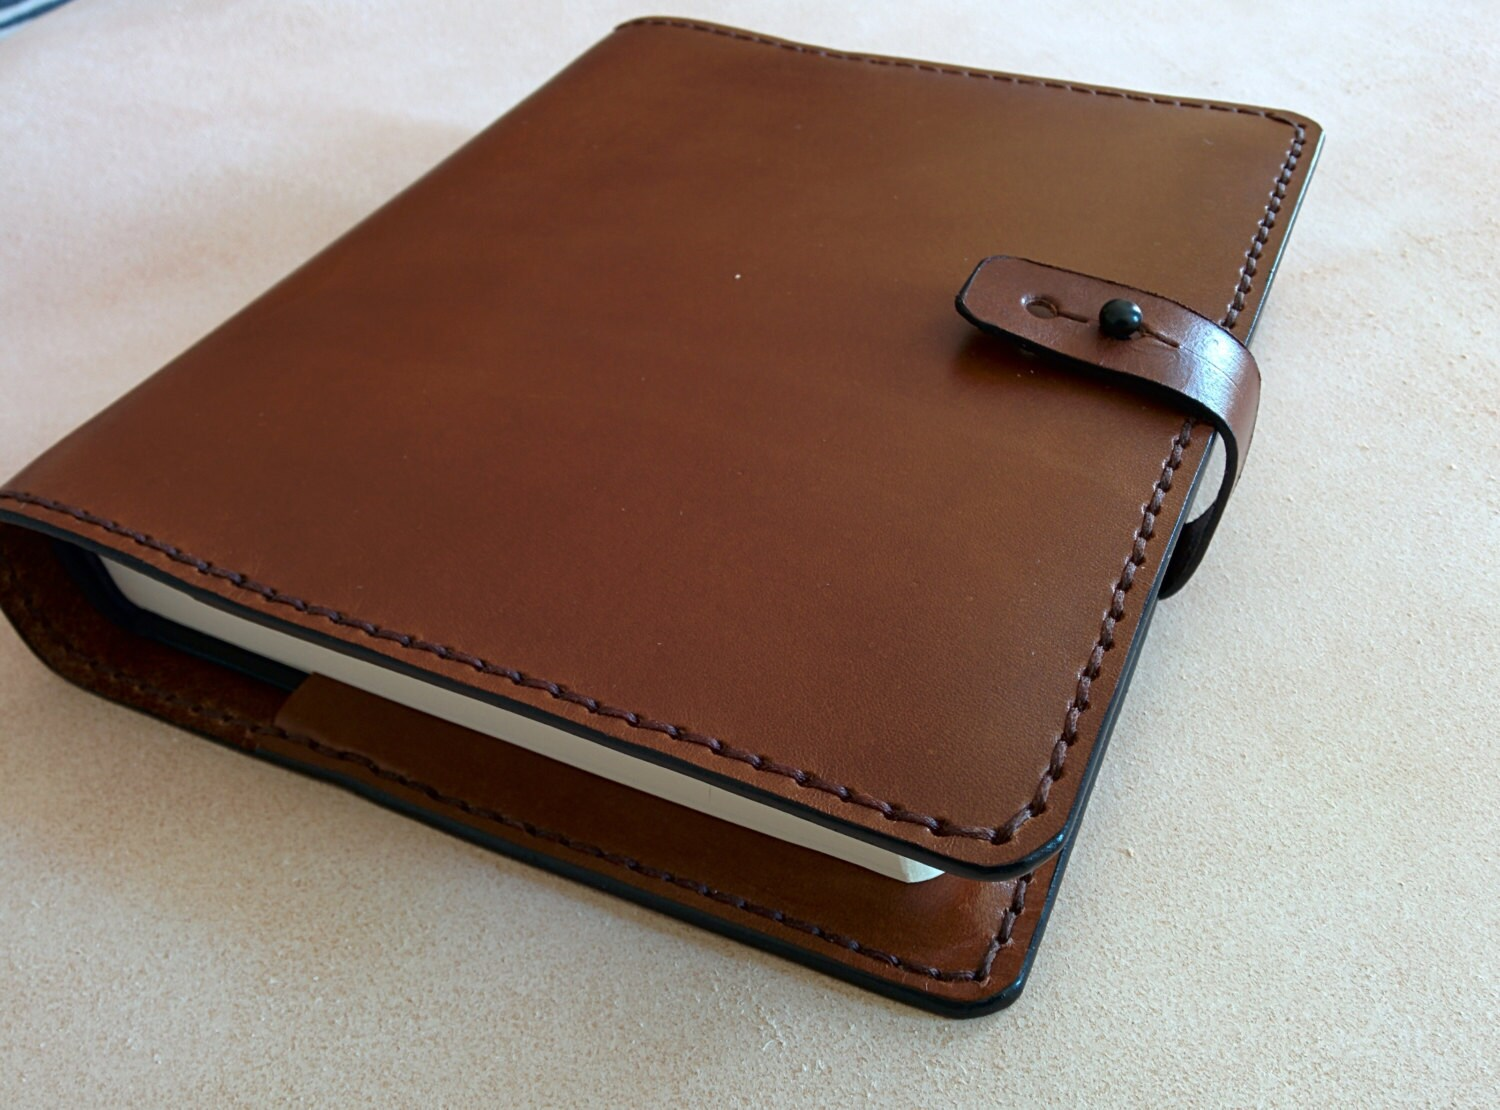 Leather Covered Book : Esv journaling bible with handmade leather cover brown made